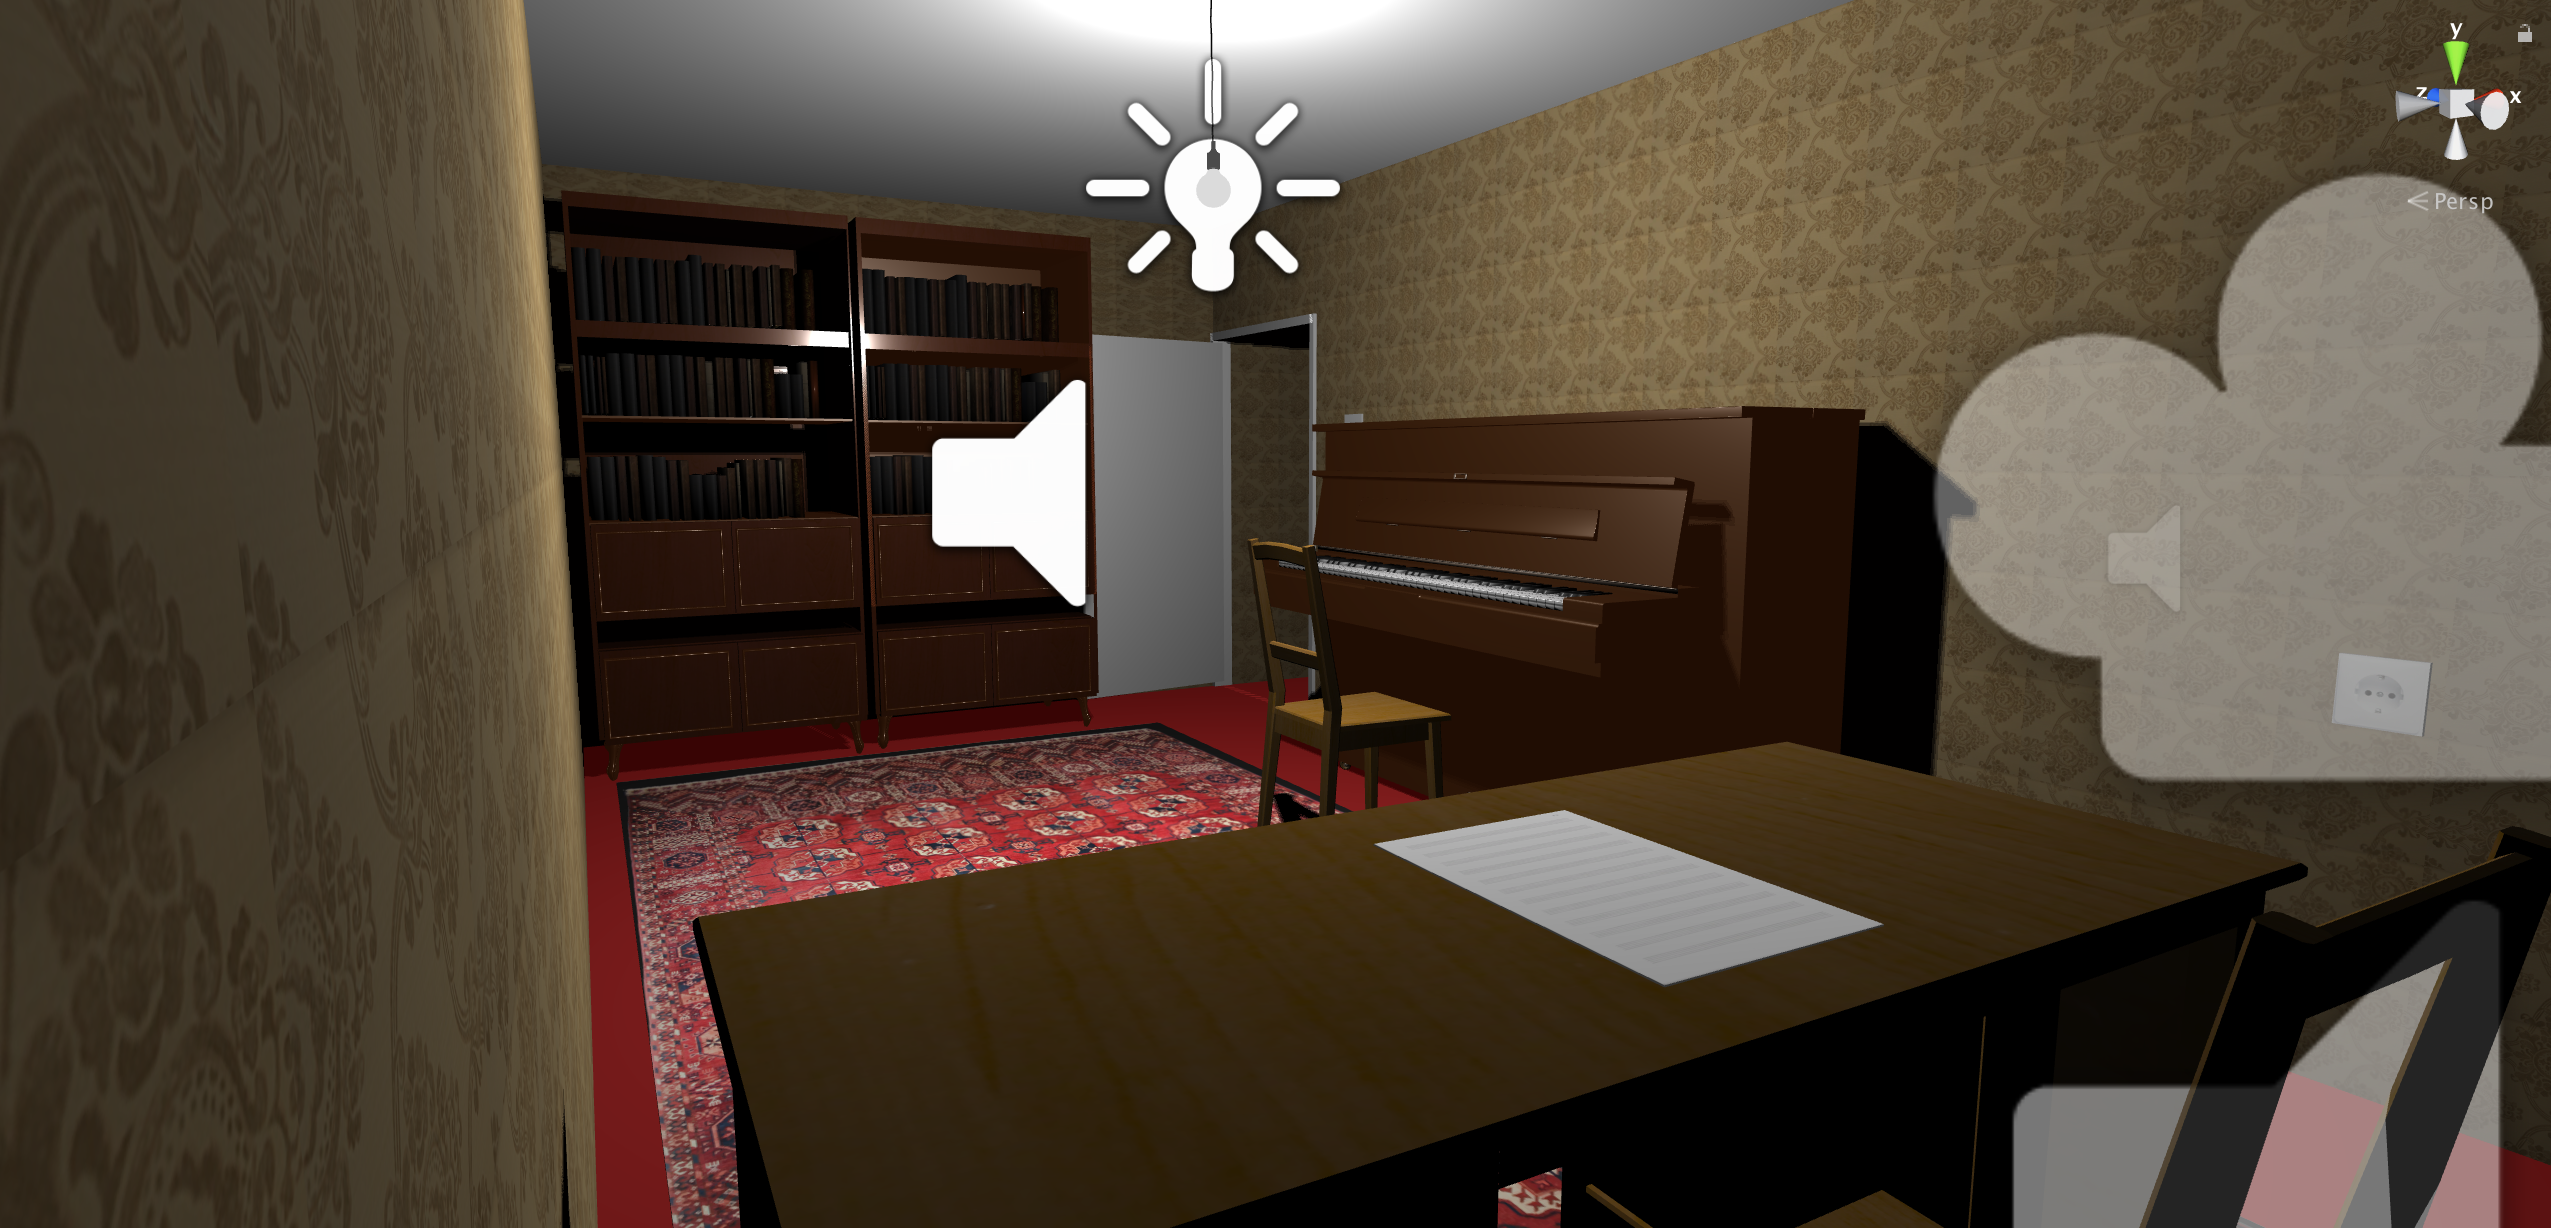 Office built in Unity 3D